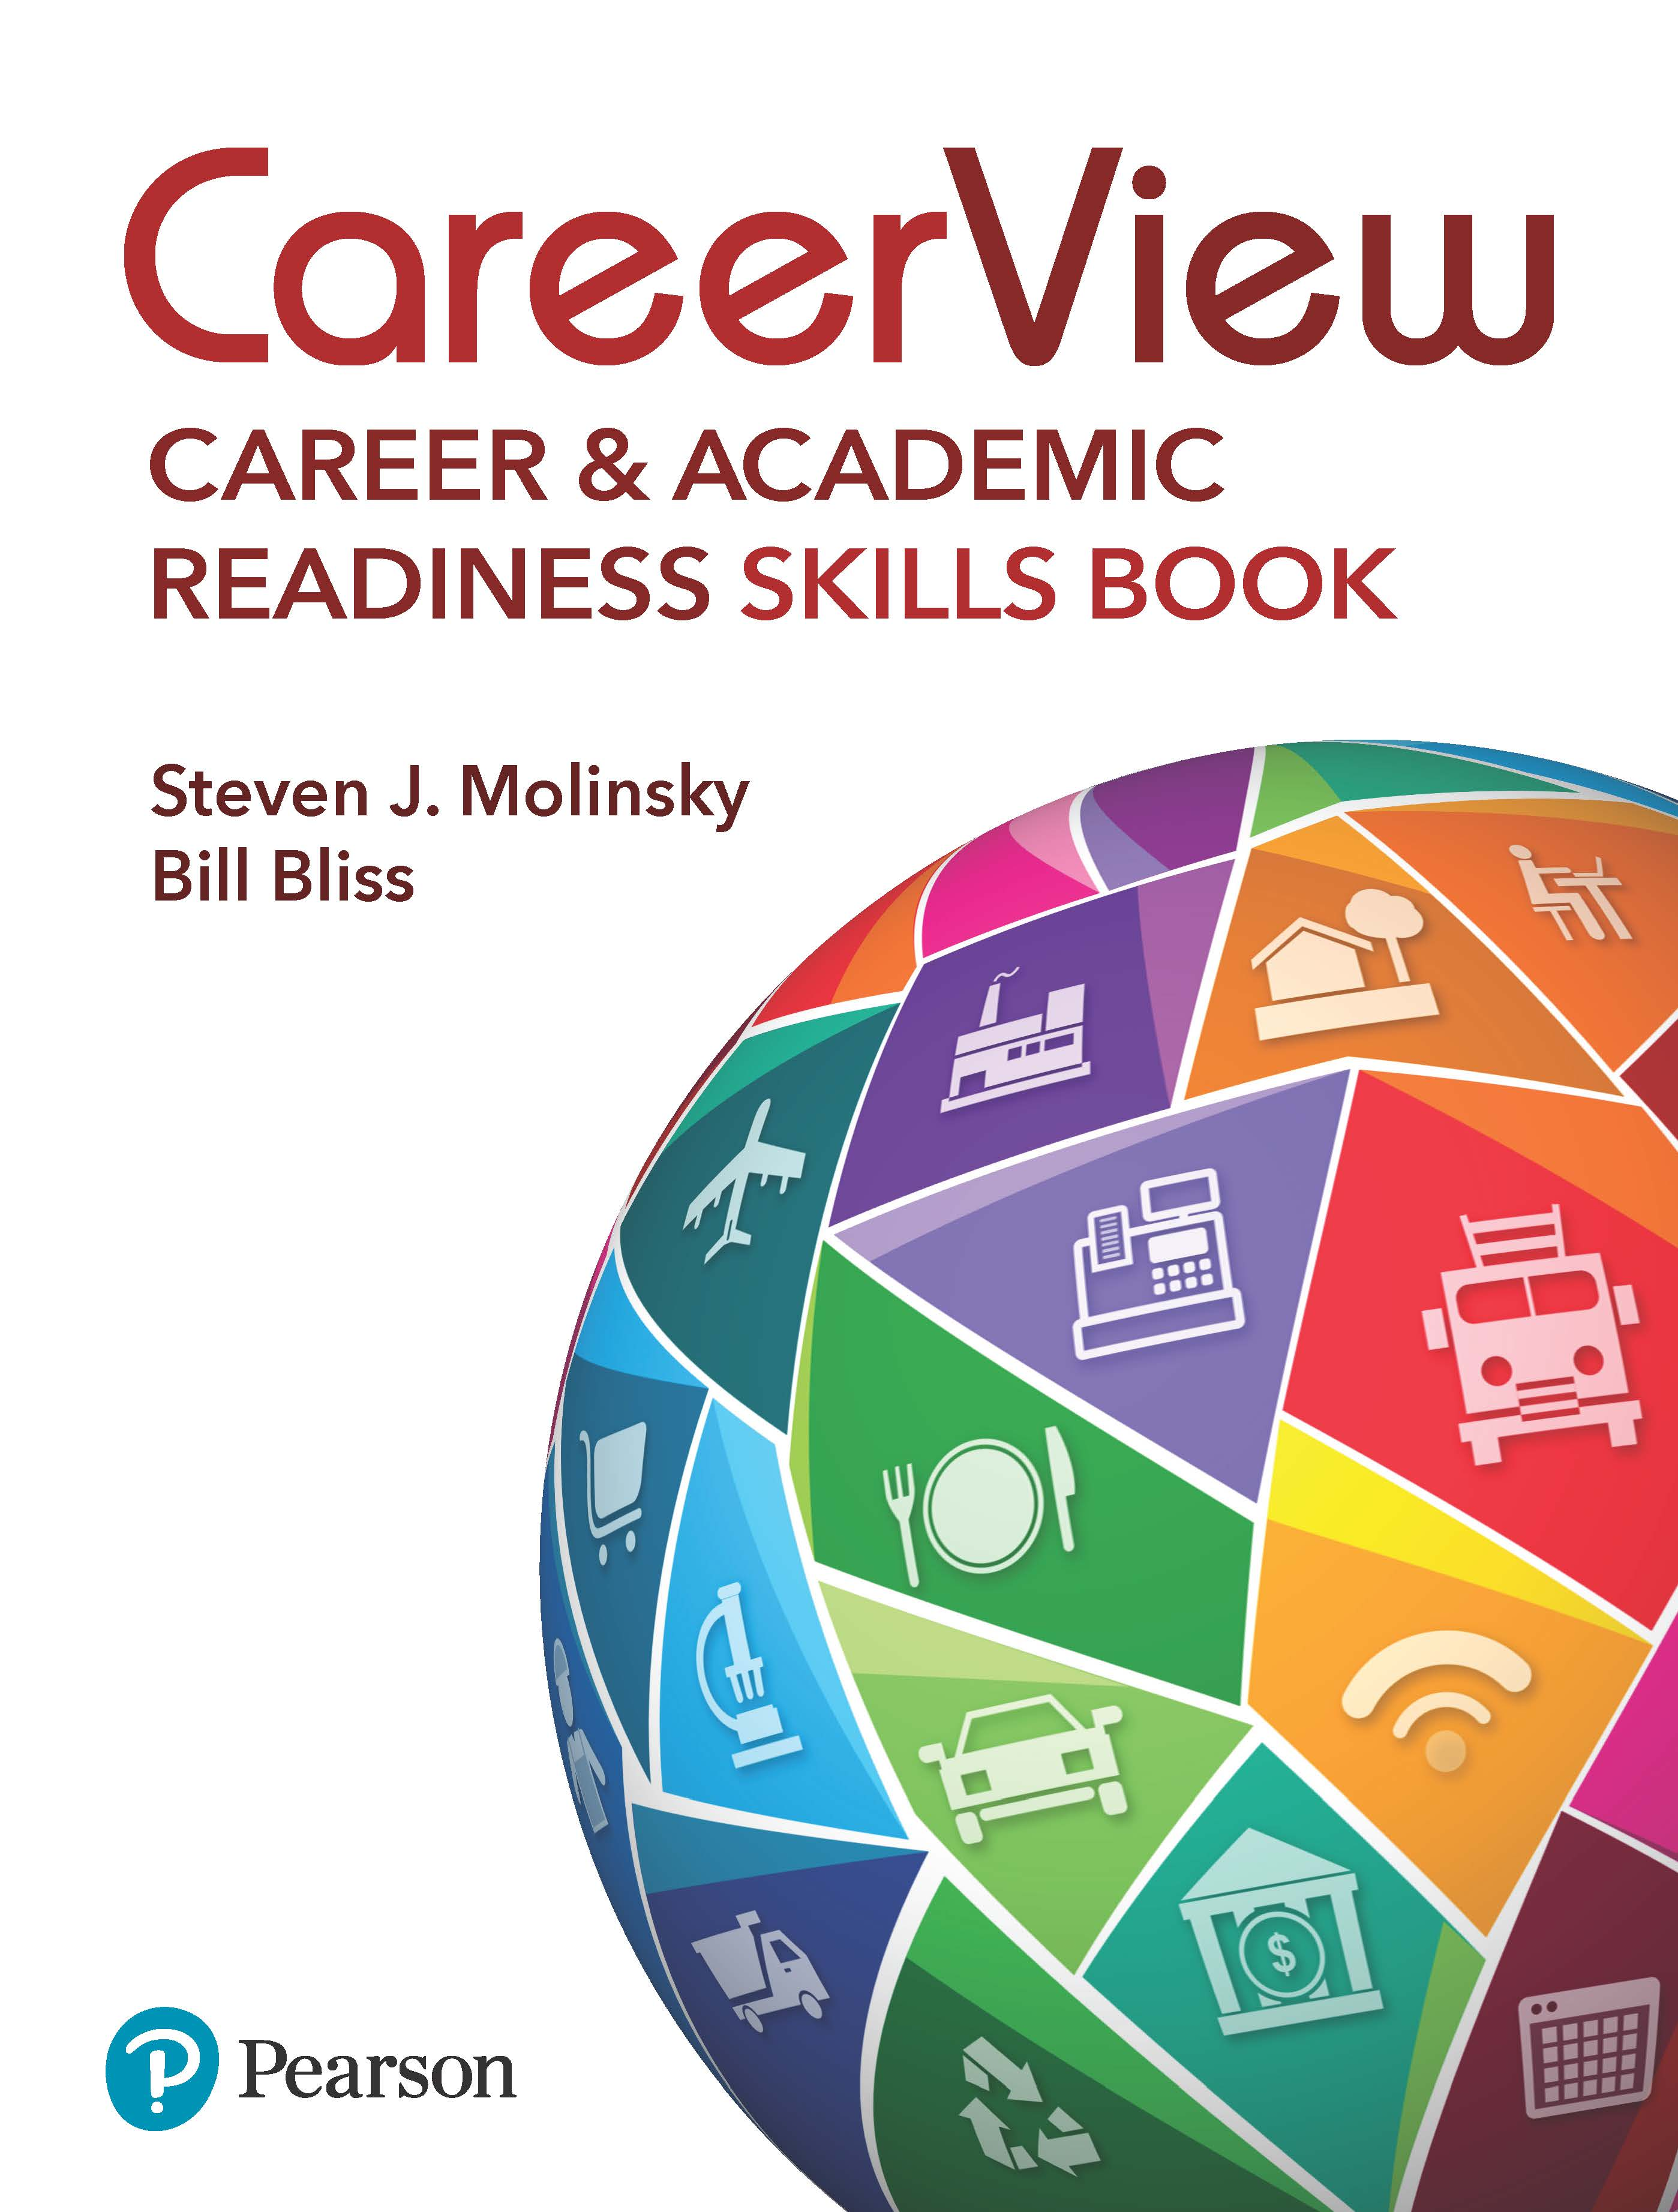 careerview skills book